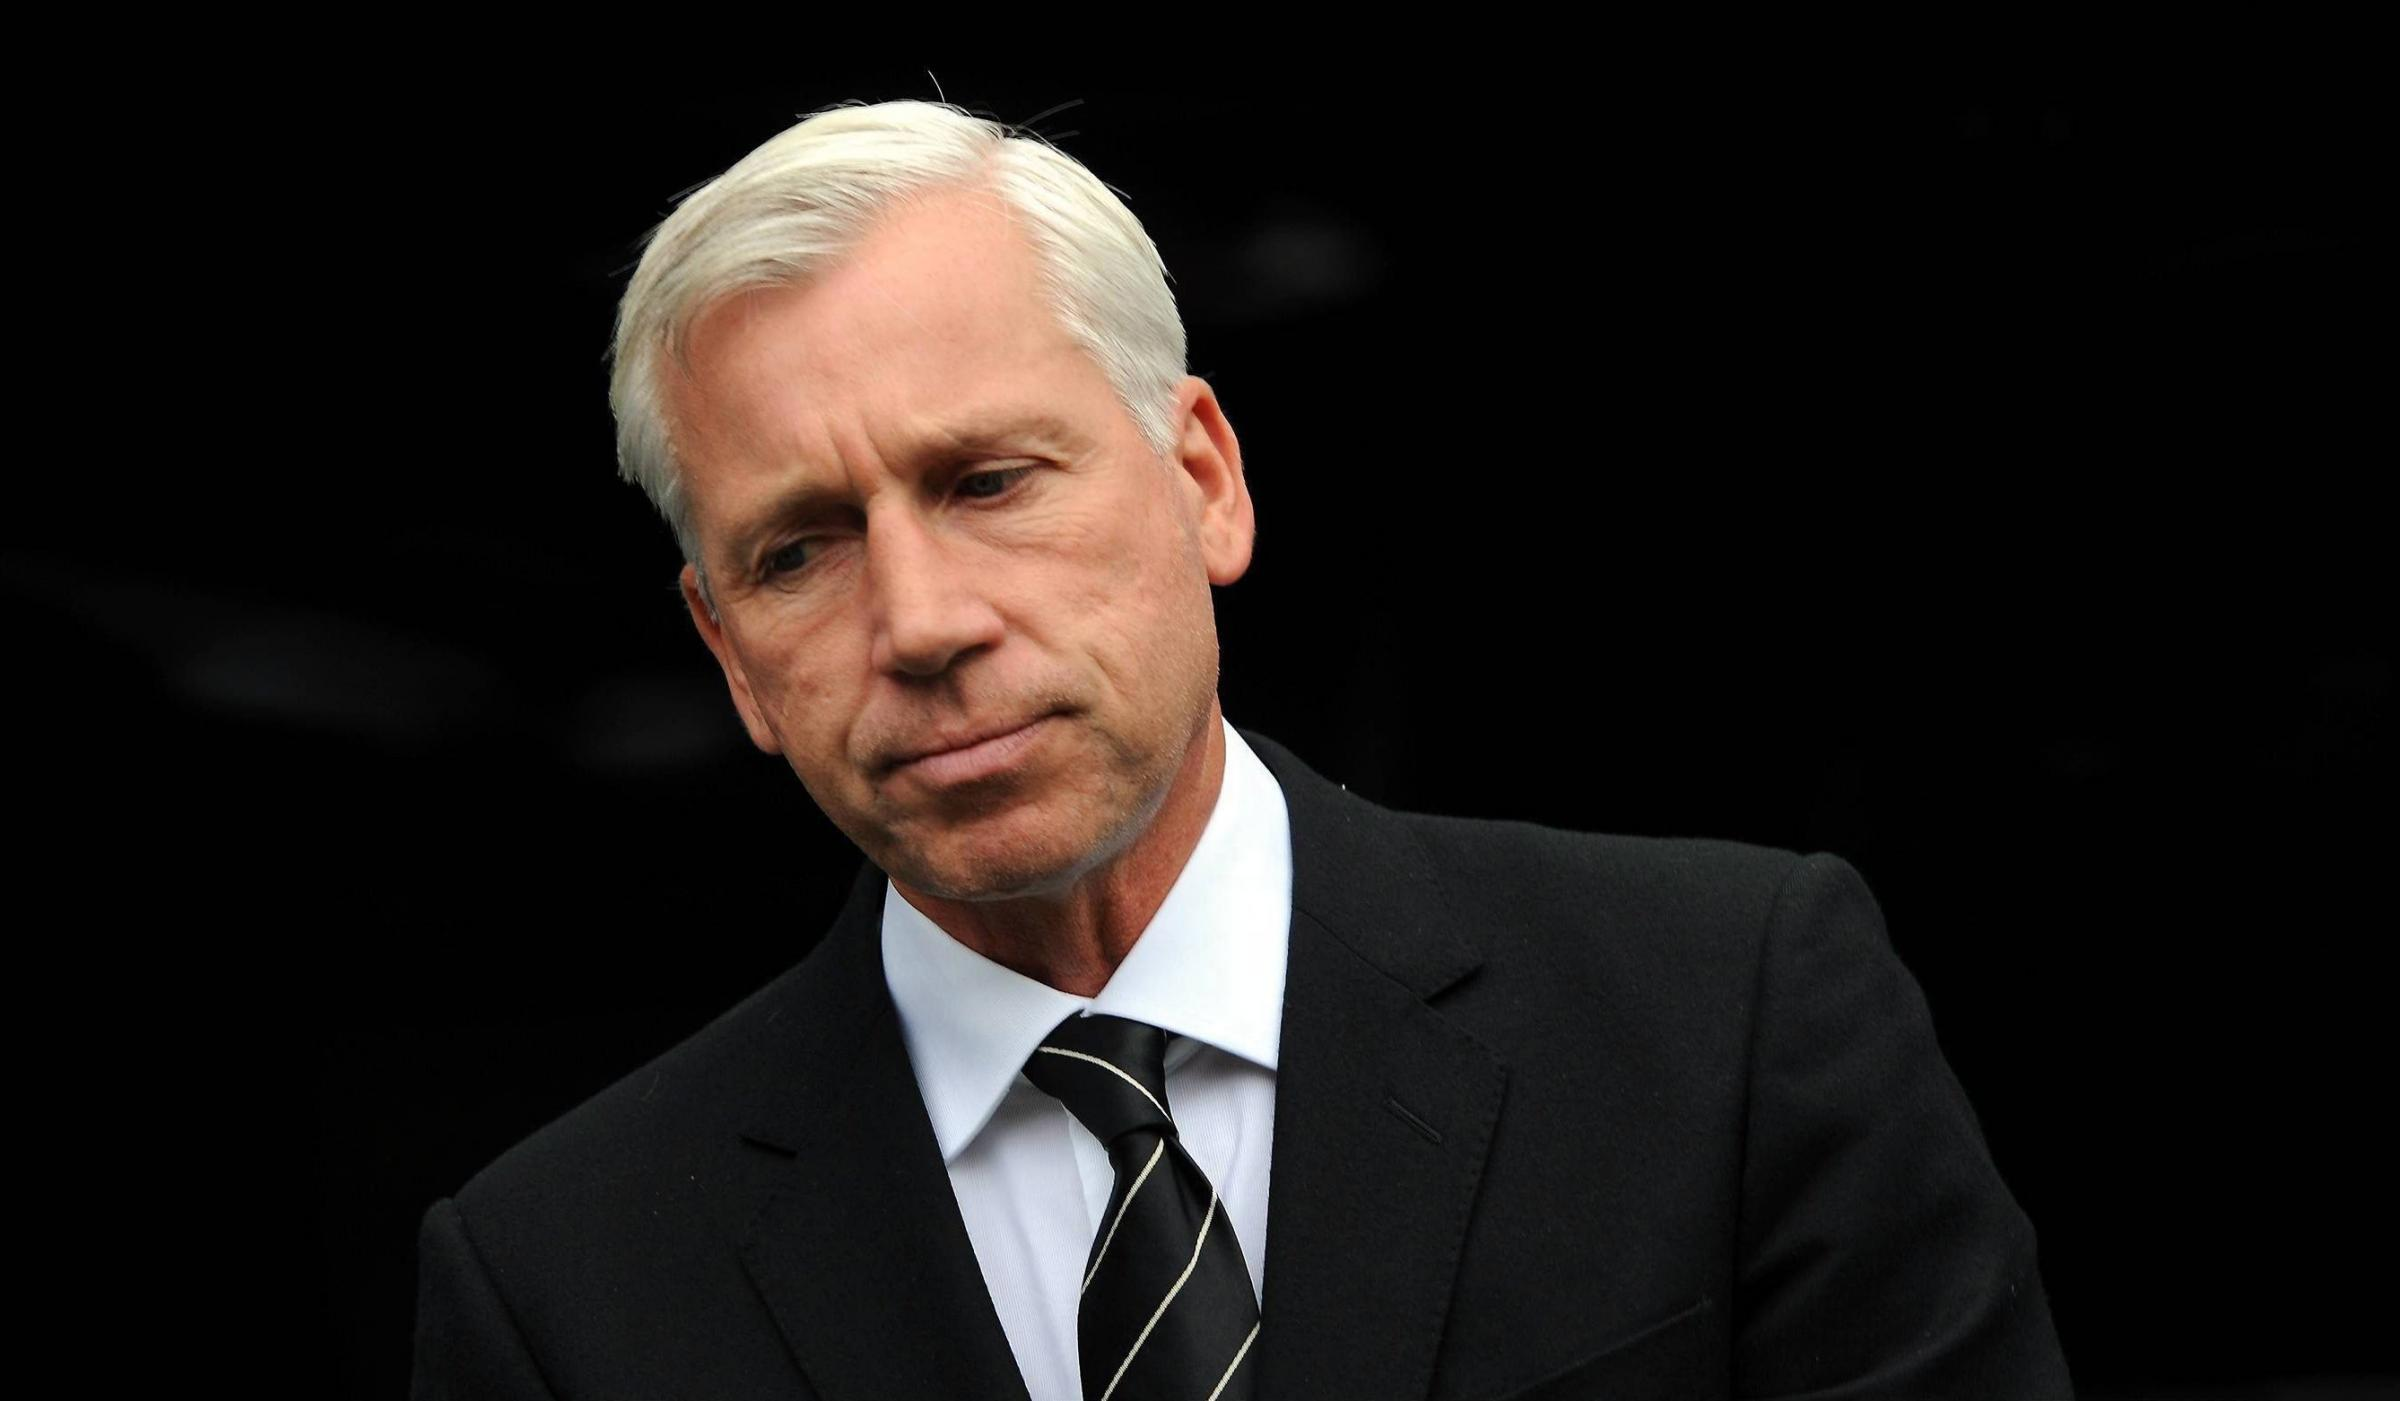 SHOW OF SUPPORT: Alan Pardew wants Newcastle supporters to back his players rather than protest against the regime during today's final home game of the season against Cardiff City